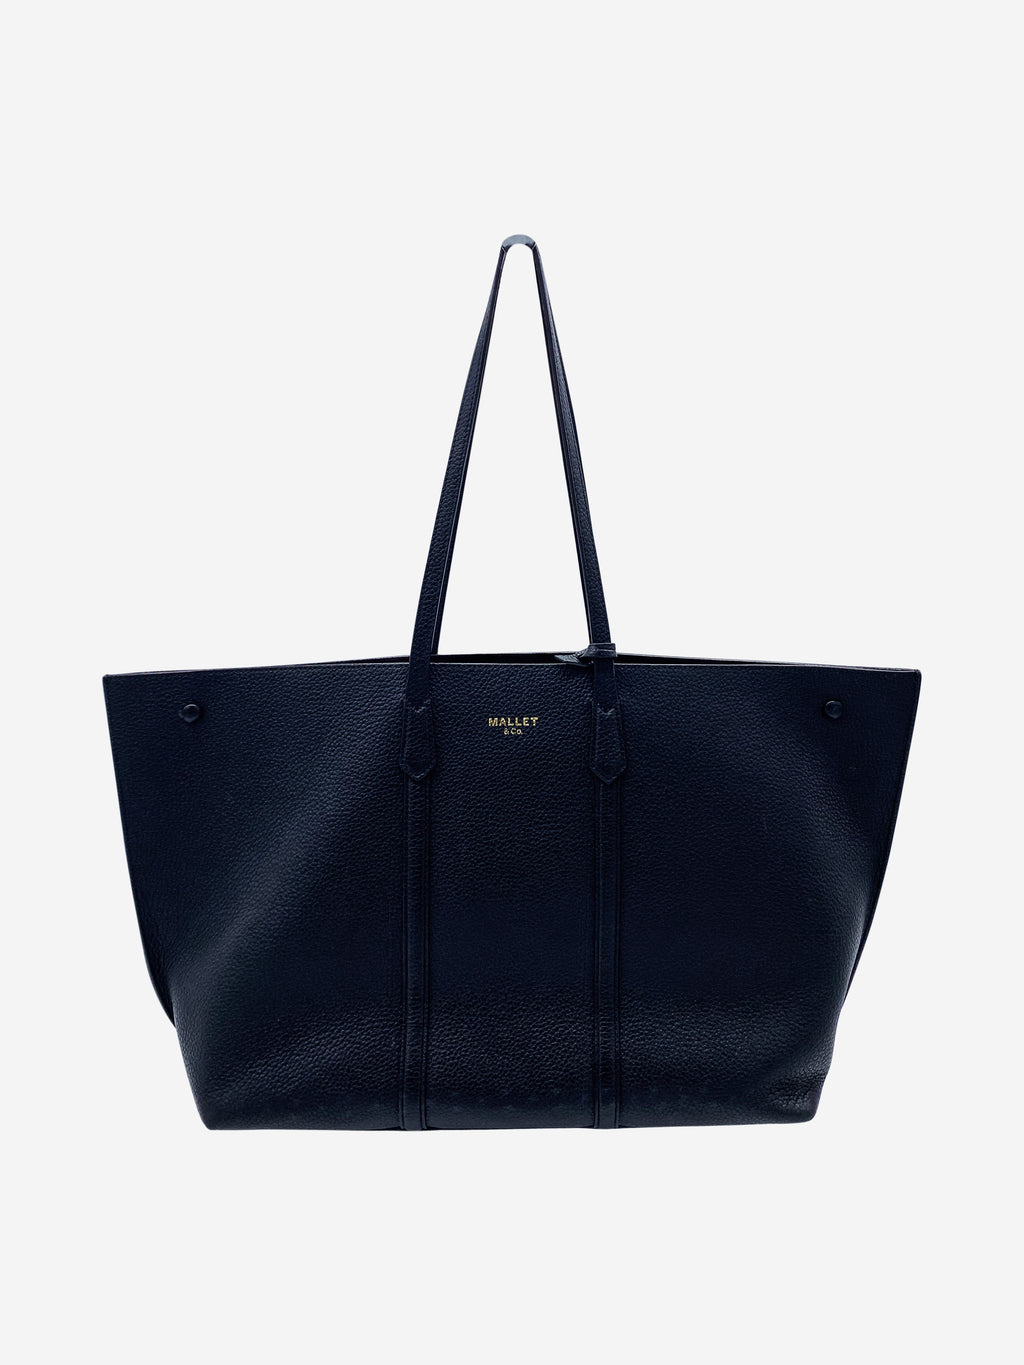 Laurie large black tote bag with inside wallet